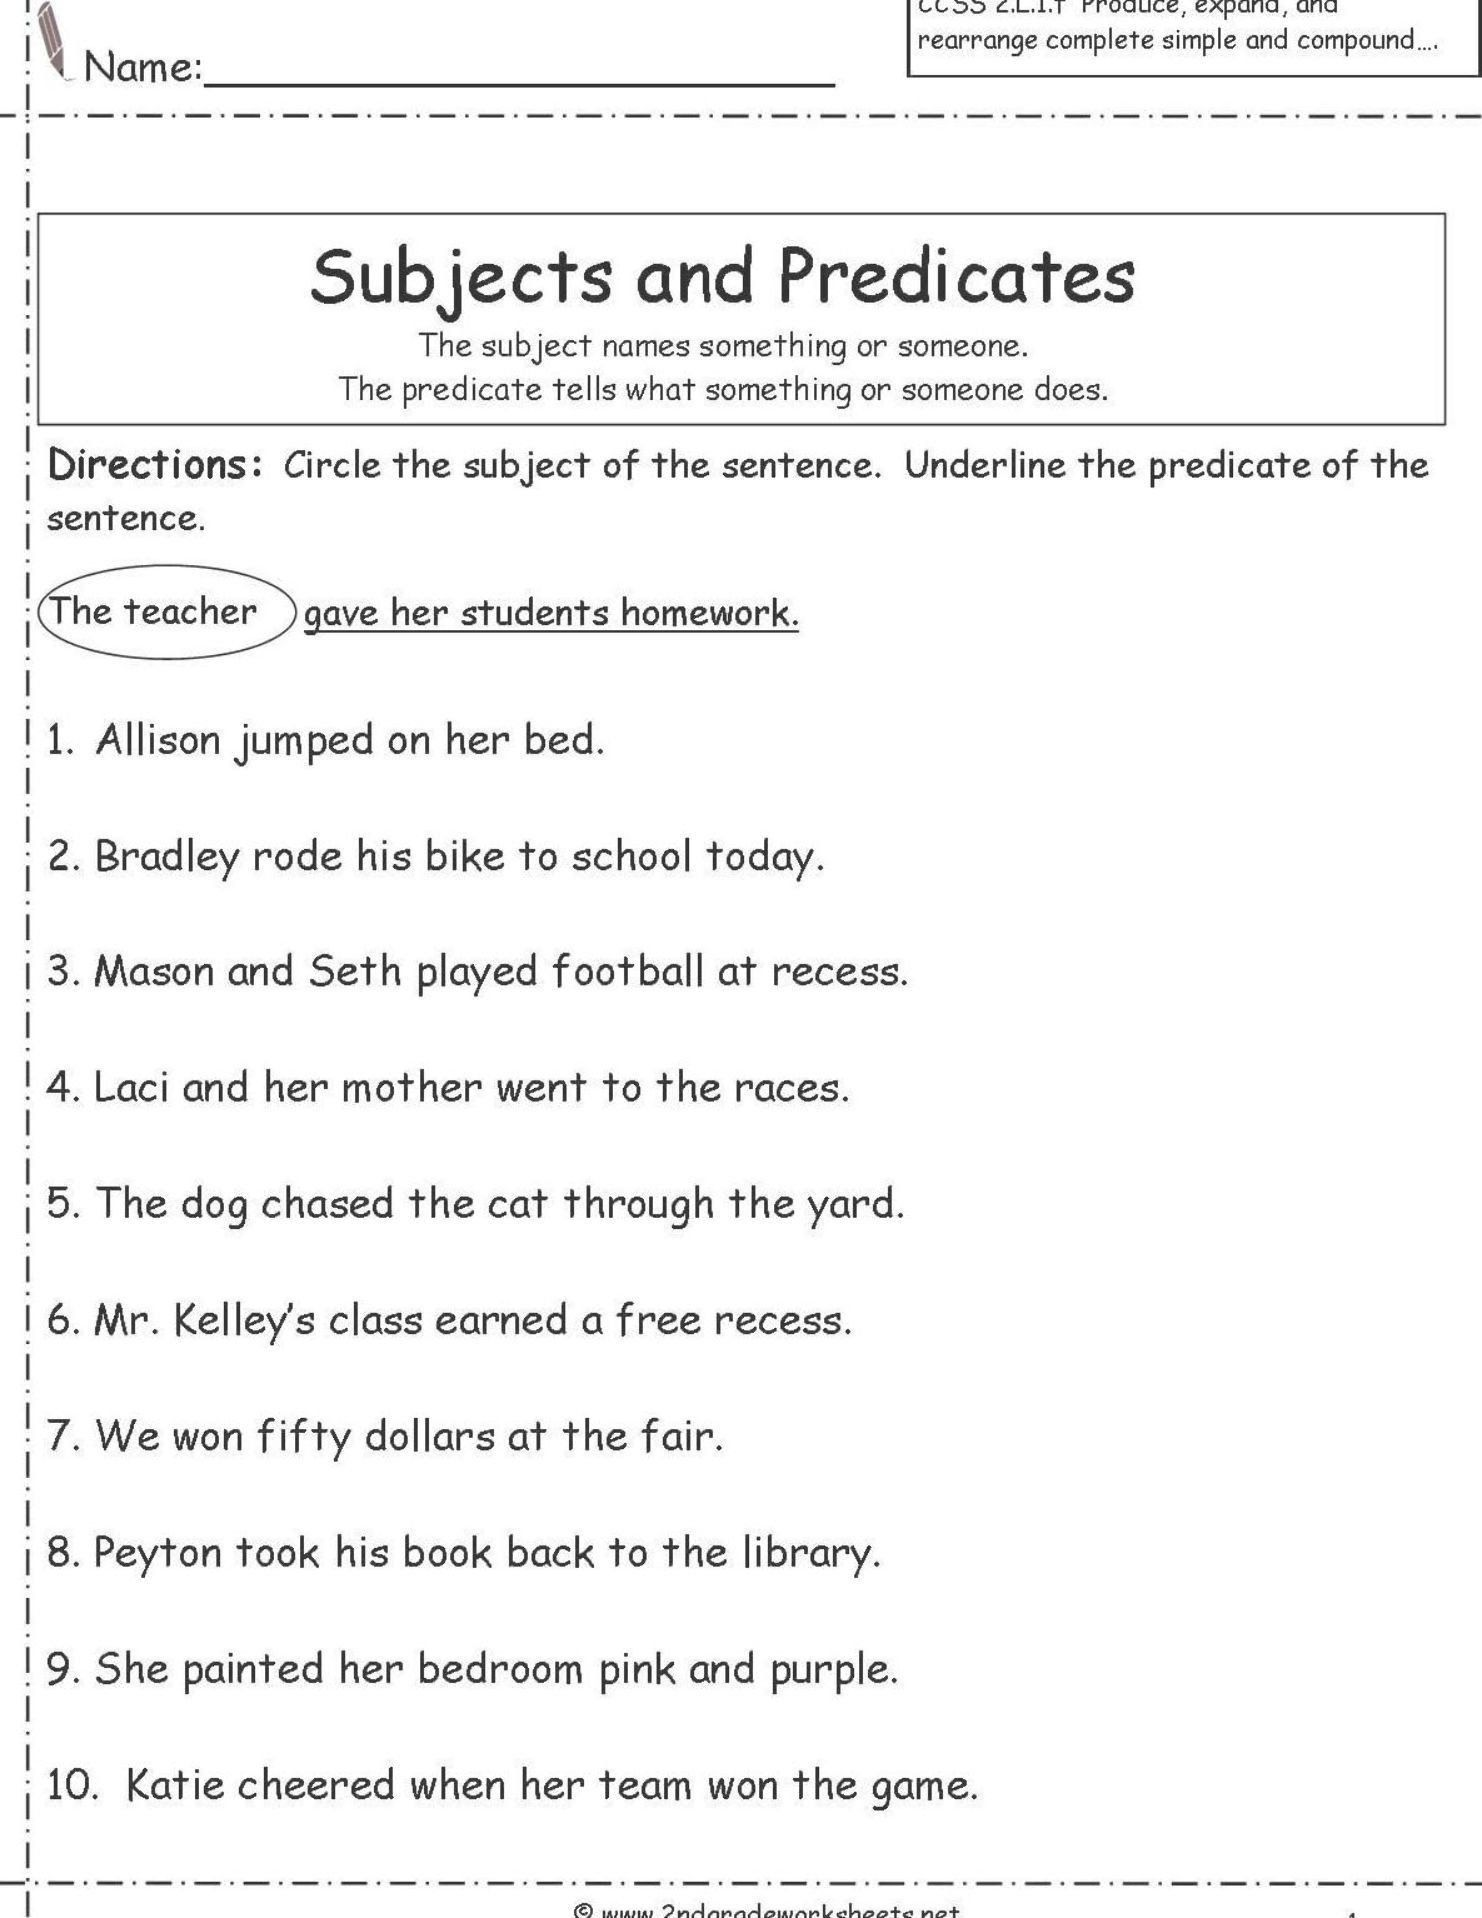 hight resolution of Dictionary Skills Worksheet 3rd Grade Subject and Predicate Worksheets for  Second Grade   Subject and predicate worksheets